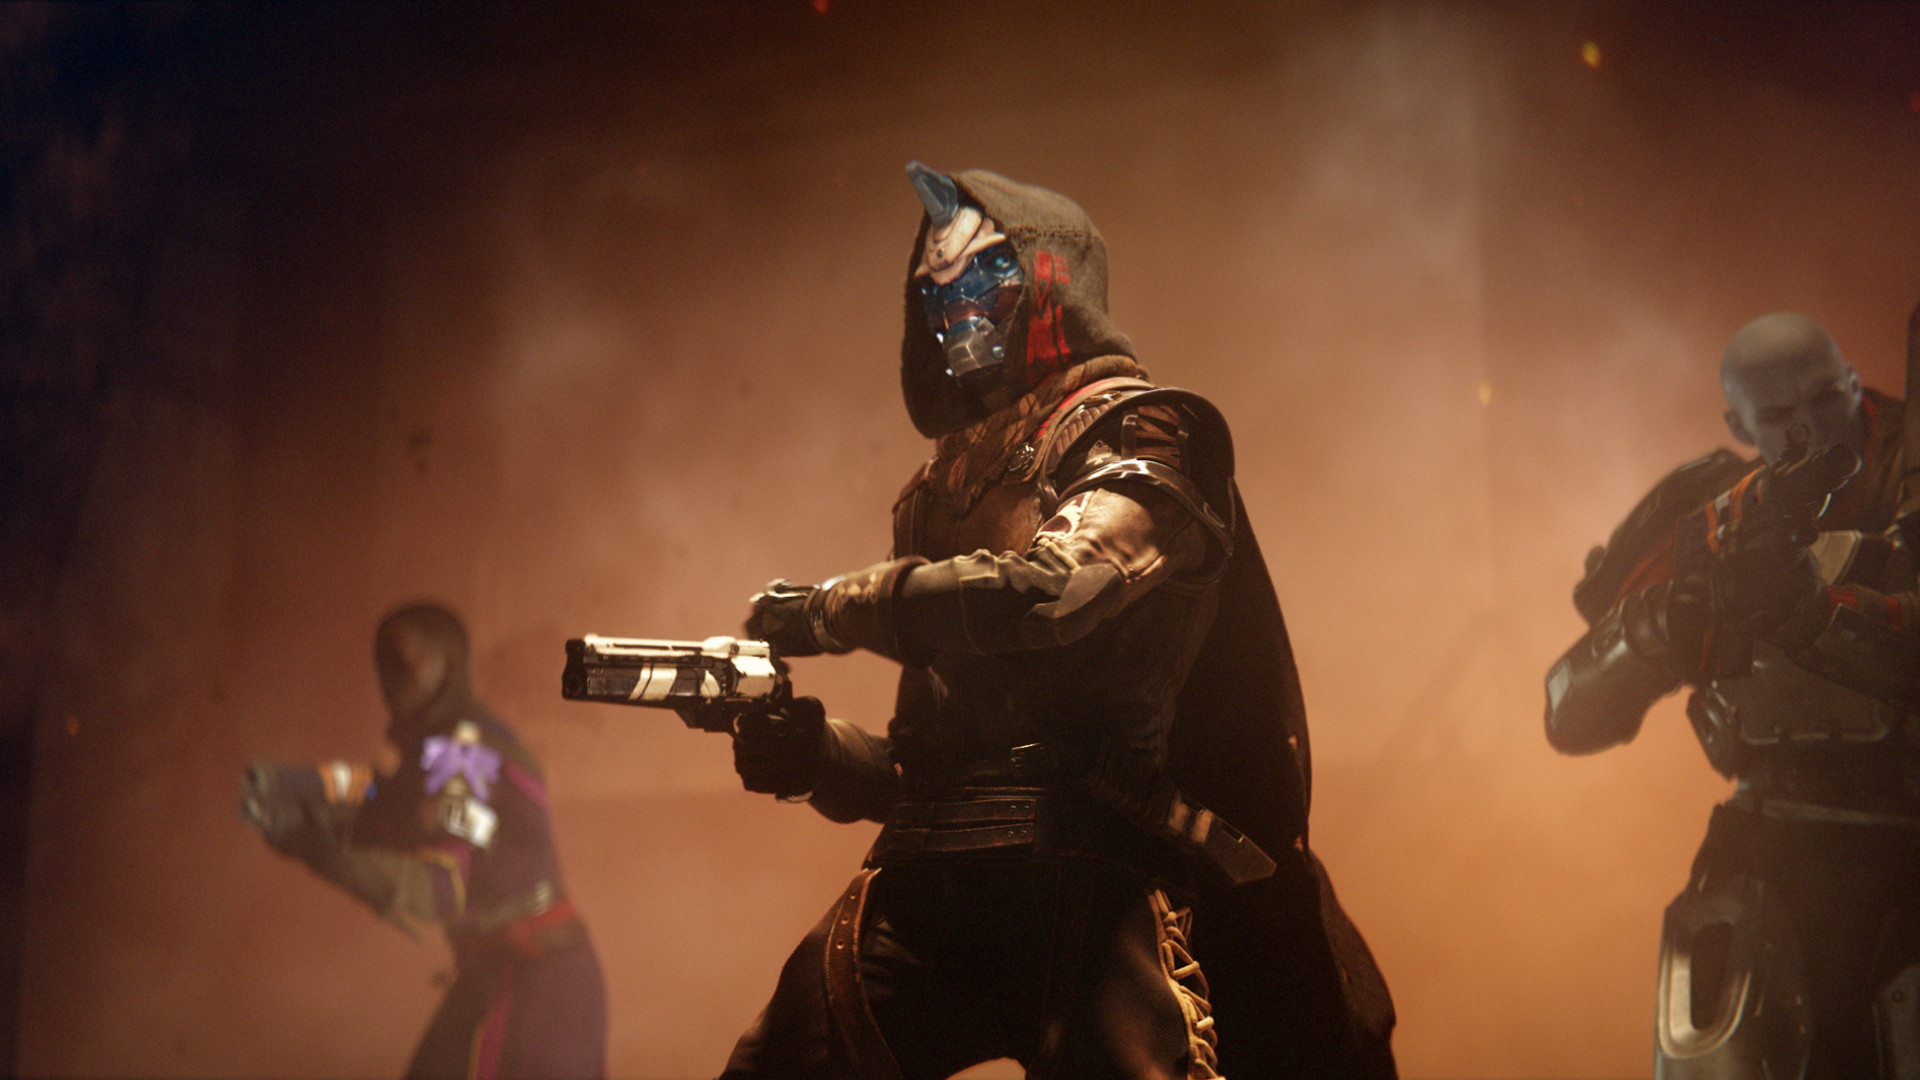 Destiny-2-Looped-walkthrough-guide-How-to-defeat-Hapax-the-Convergent-Mind